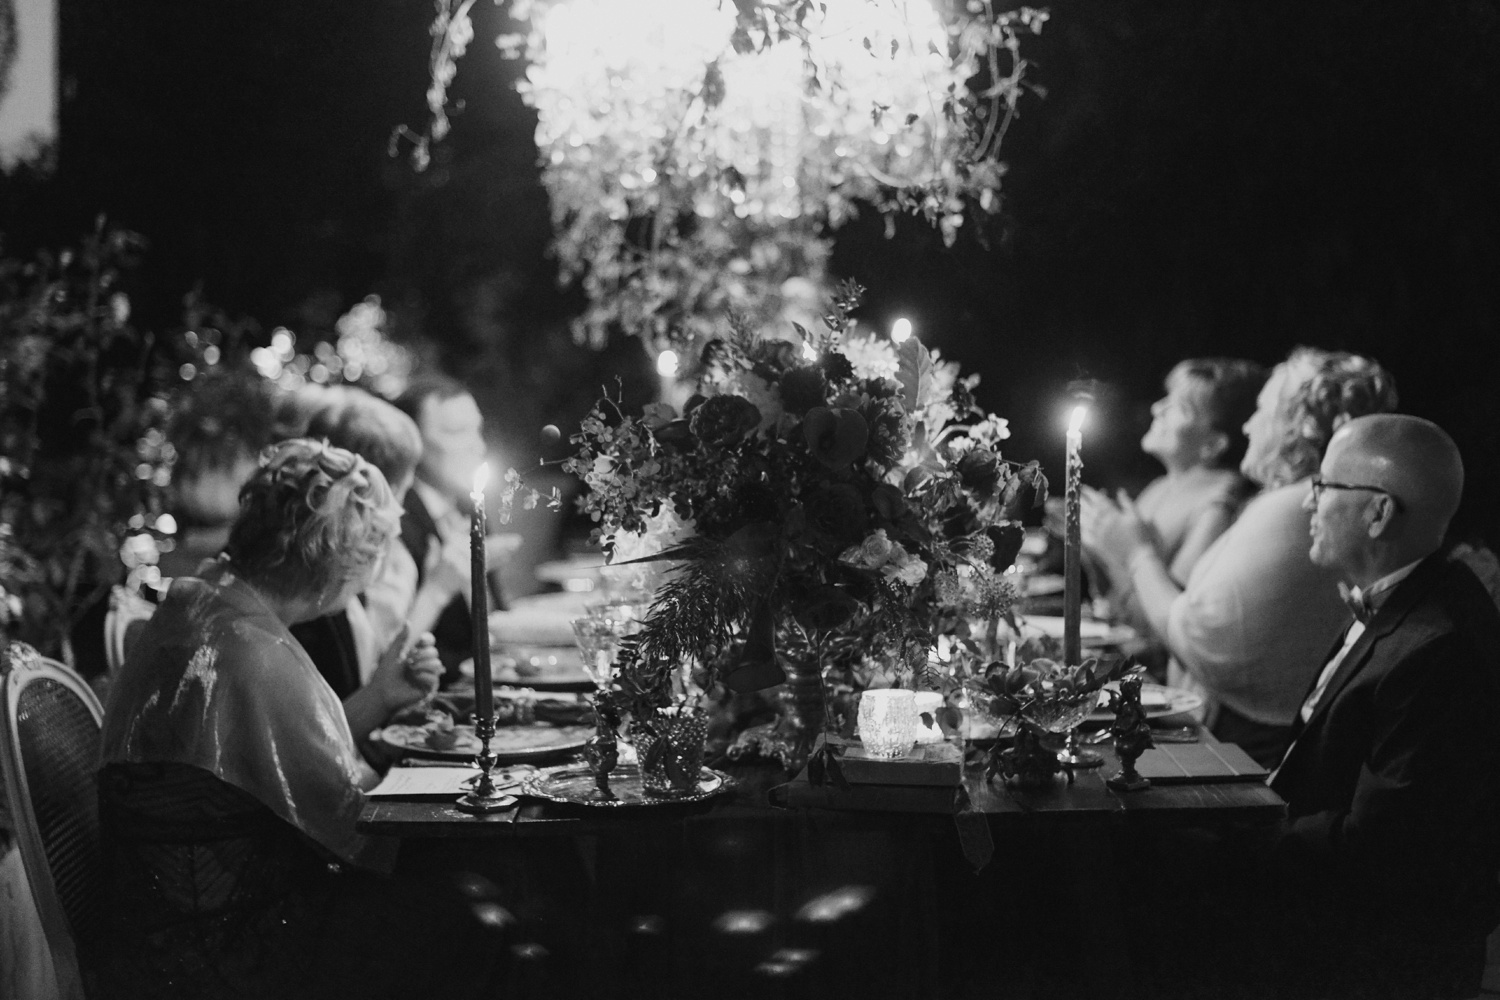 wedding-photographer-florence-fourseason-tuscany_1298.jpg